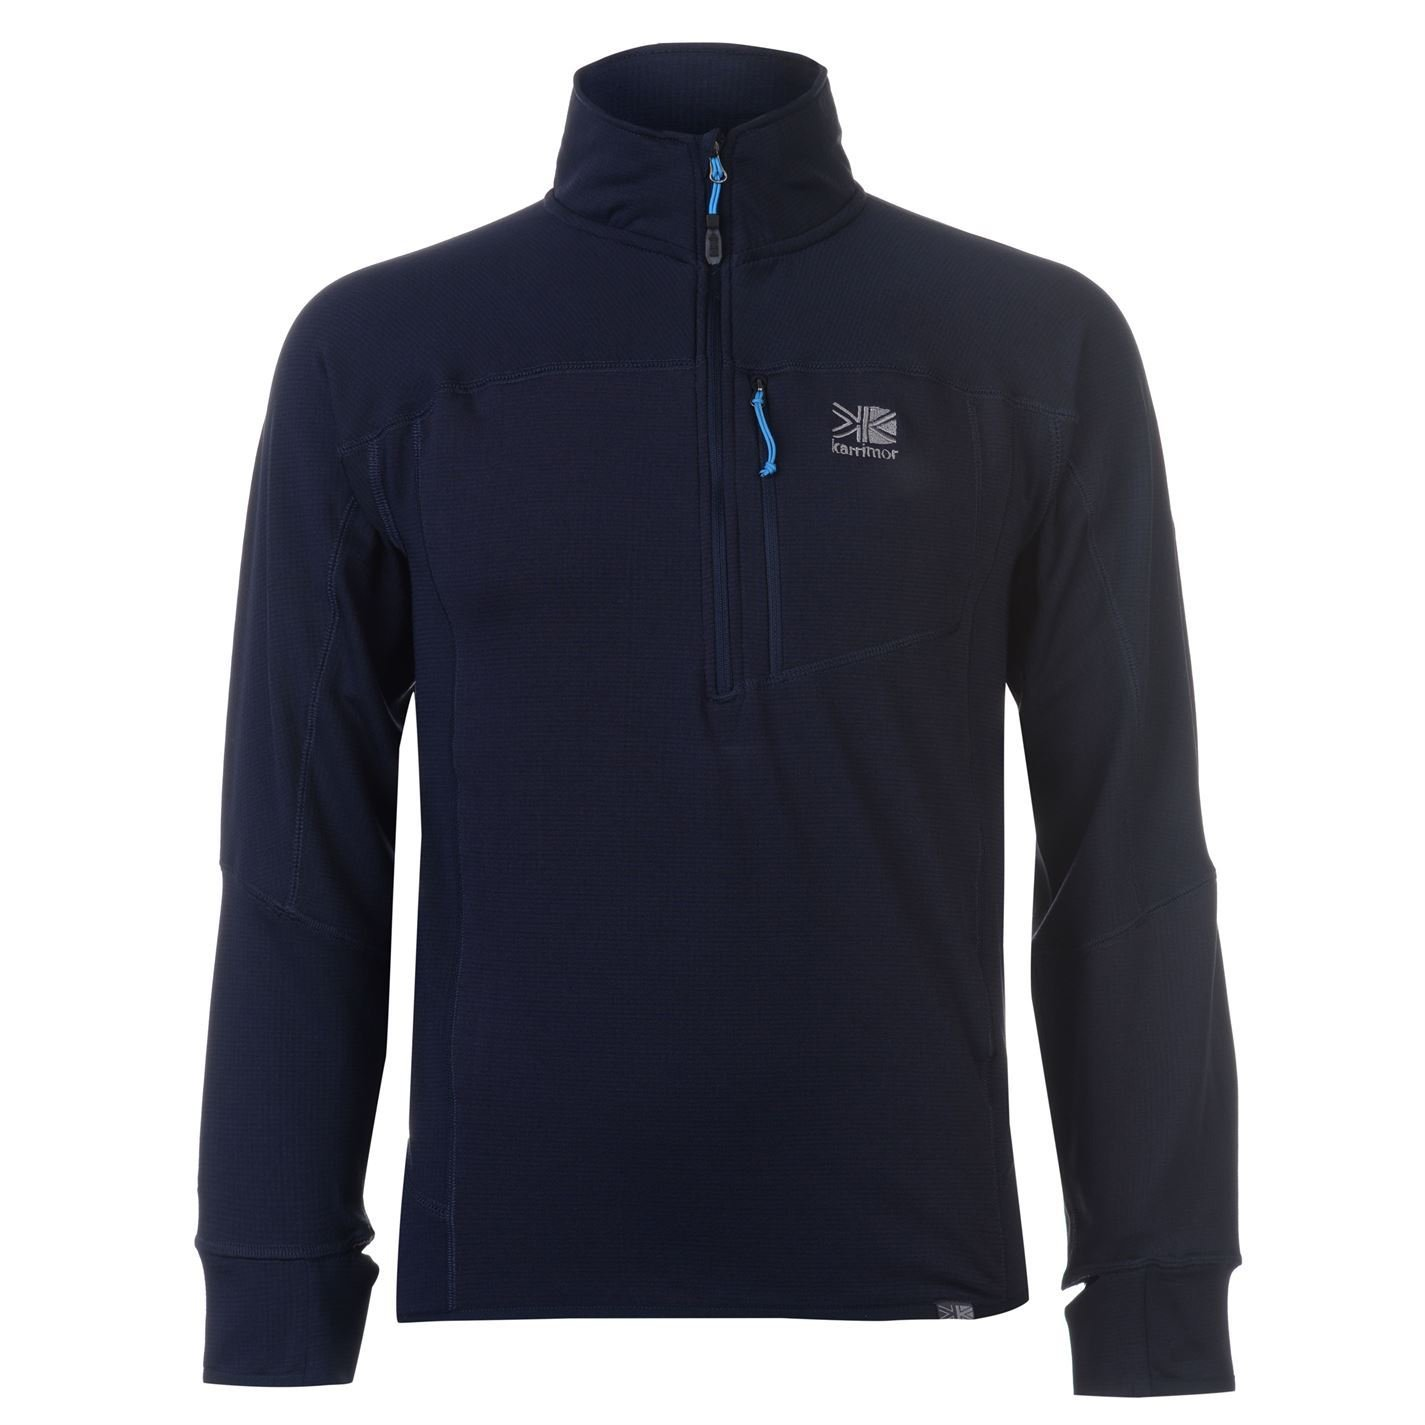 618003760de Karrimor Mens Grid Three Quarter Zip Walking Top Fleece Sweatshirt Jumper  Long Navy Blue XL  Amazon.co.uk  Clothing